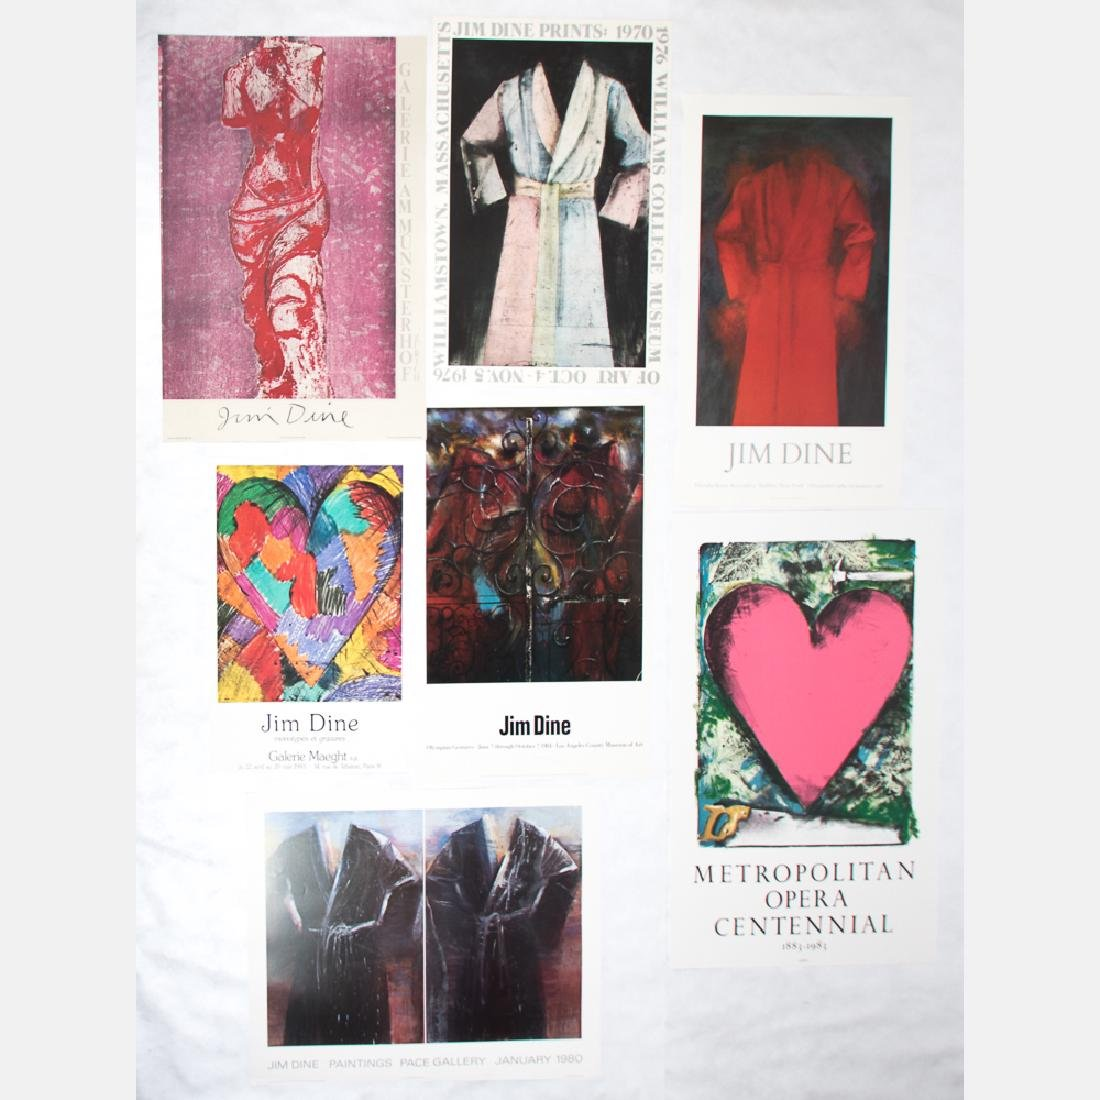 Jim Dine (b. 1935) A Collection of Seven Exhibition